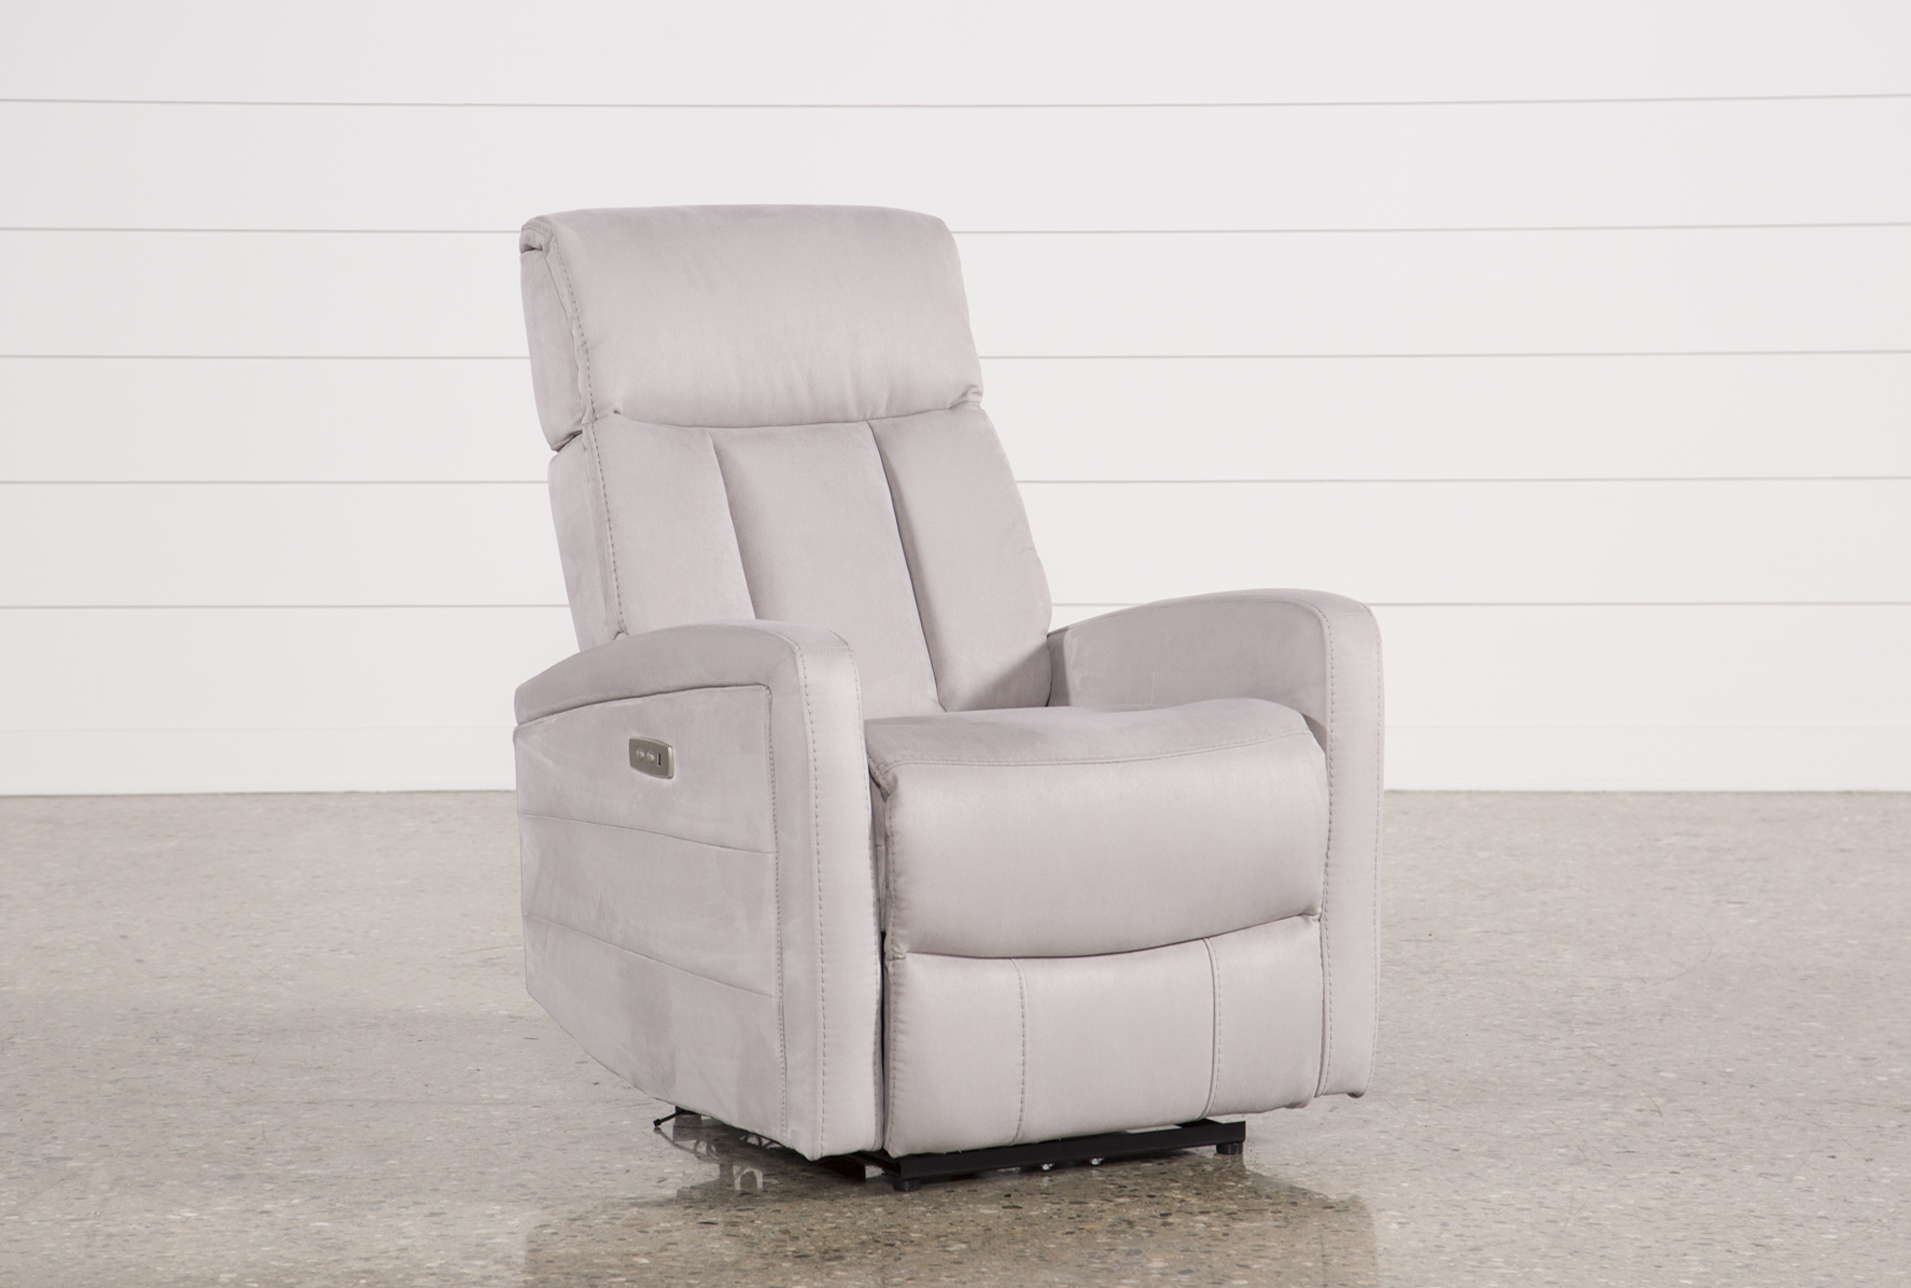 Genial Display Product Reviews For LEENA LIGHT GREY POWER WALLAWAY RECLINER W/  ADJUSTABLE HEADREST